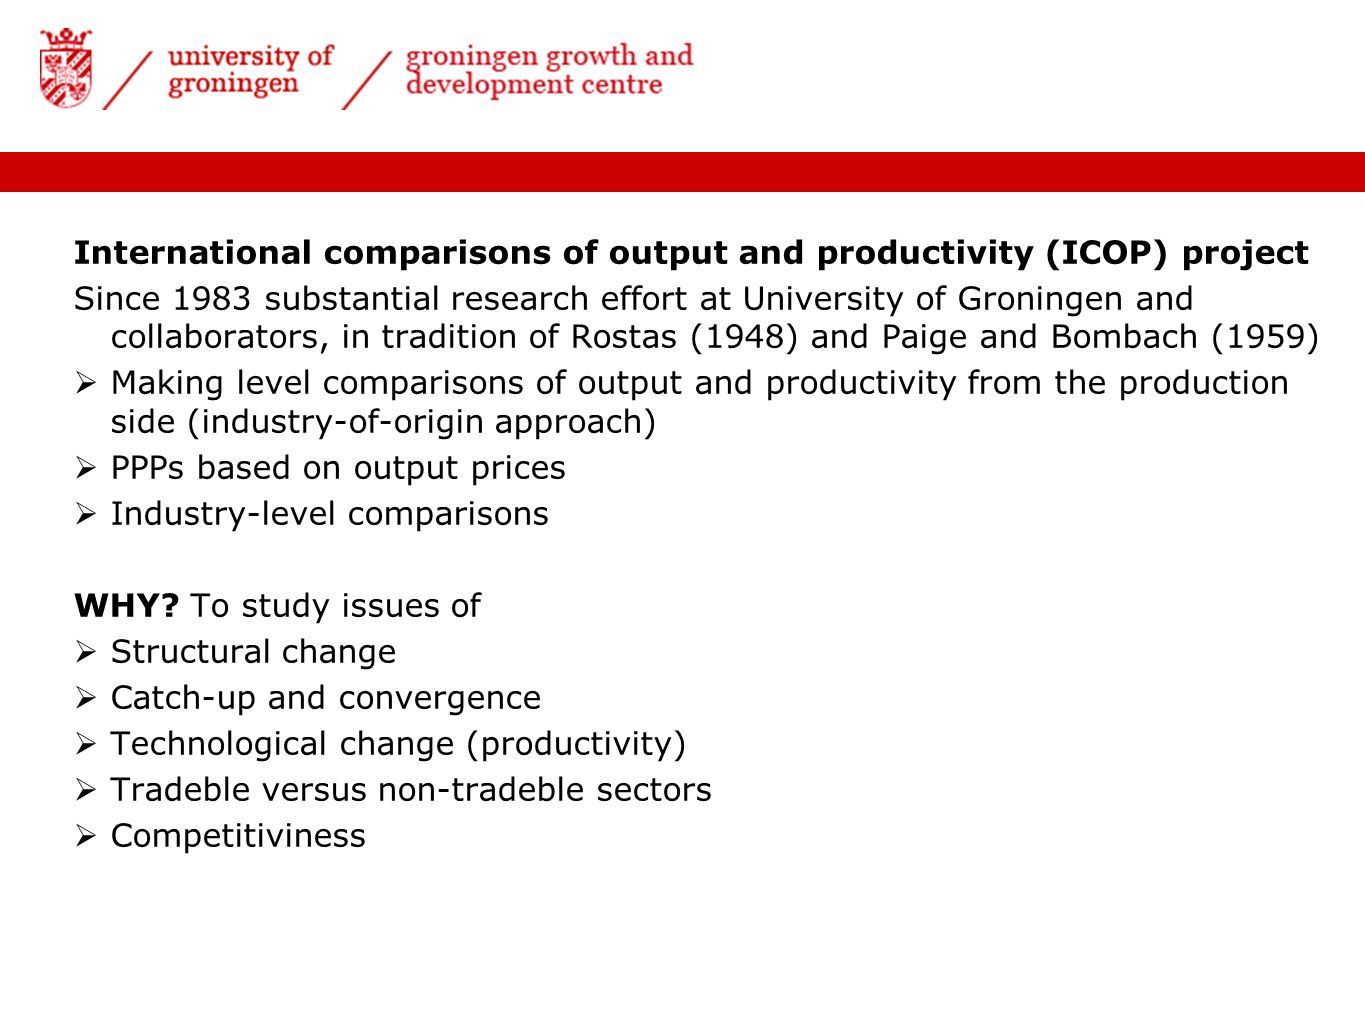 International comparisons of output and productivity (ICOP) project Since 1983 substantial research effort at University of Groningen and collaborator